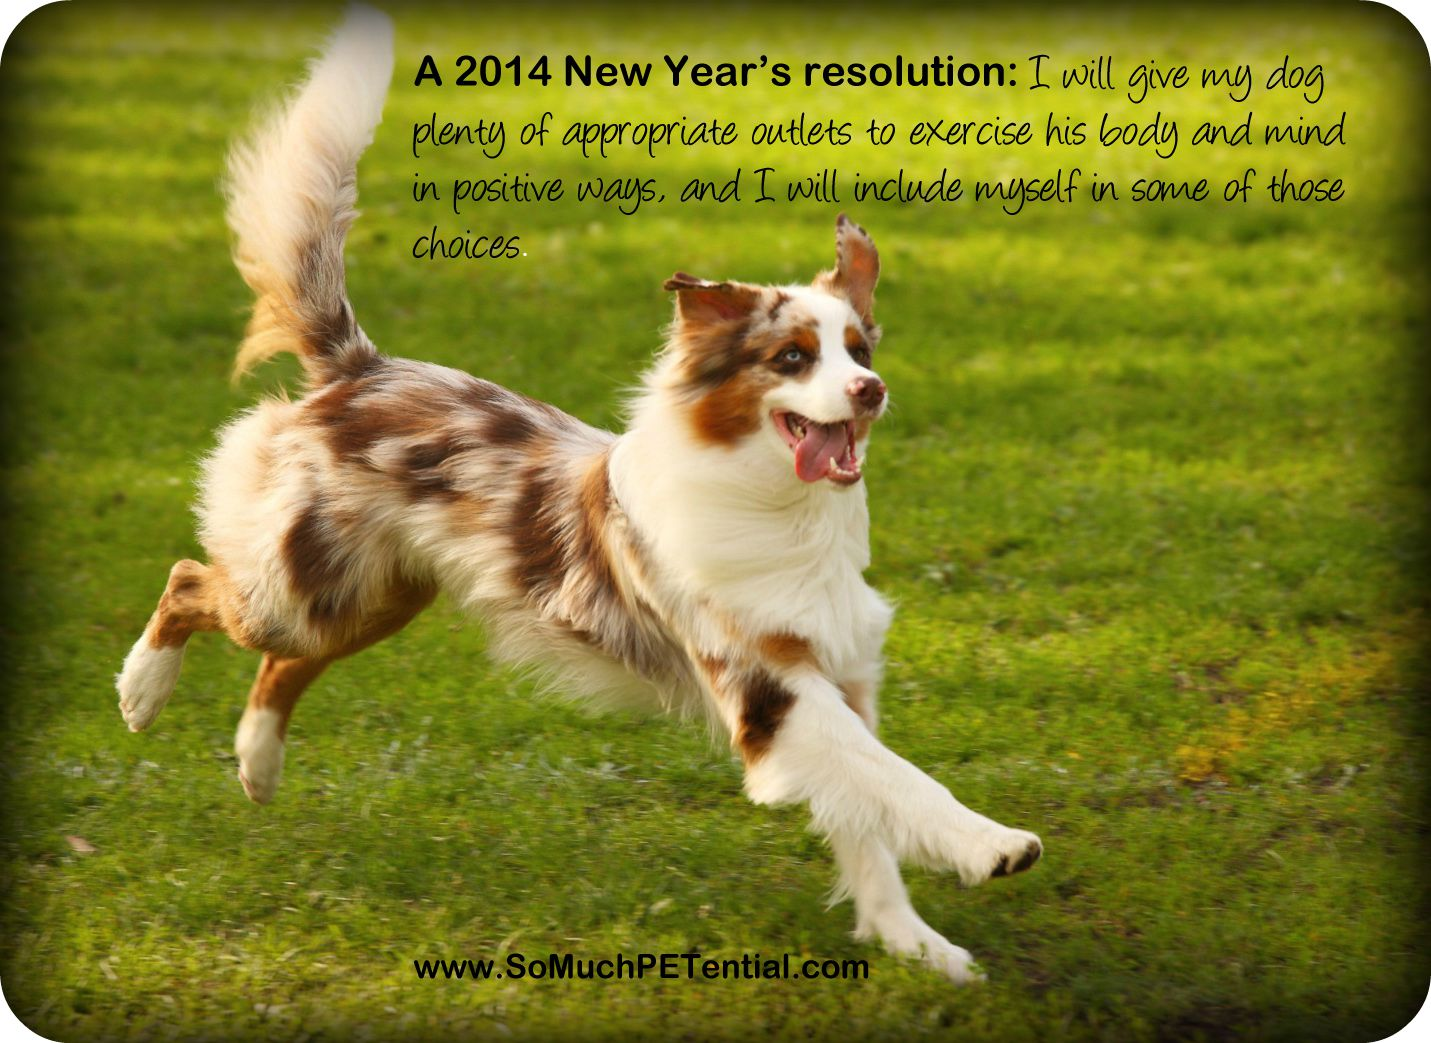 Dog Training New Year's Resolutions